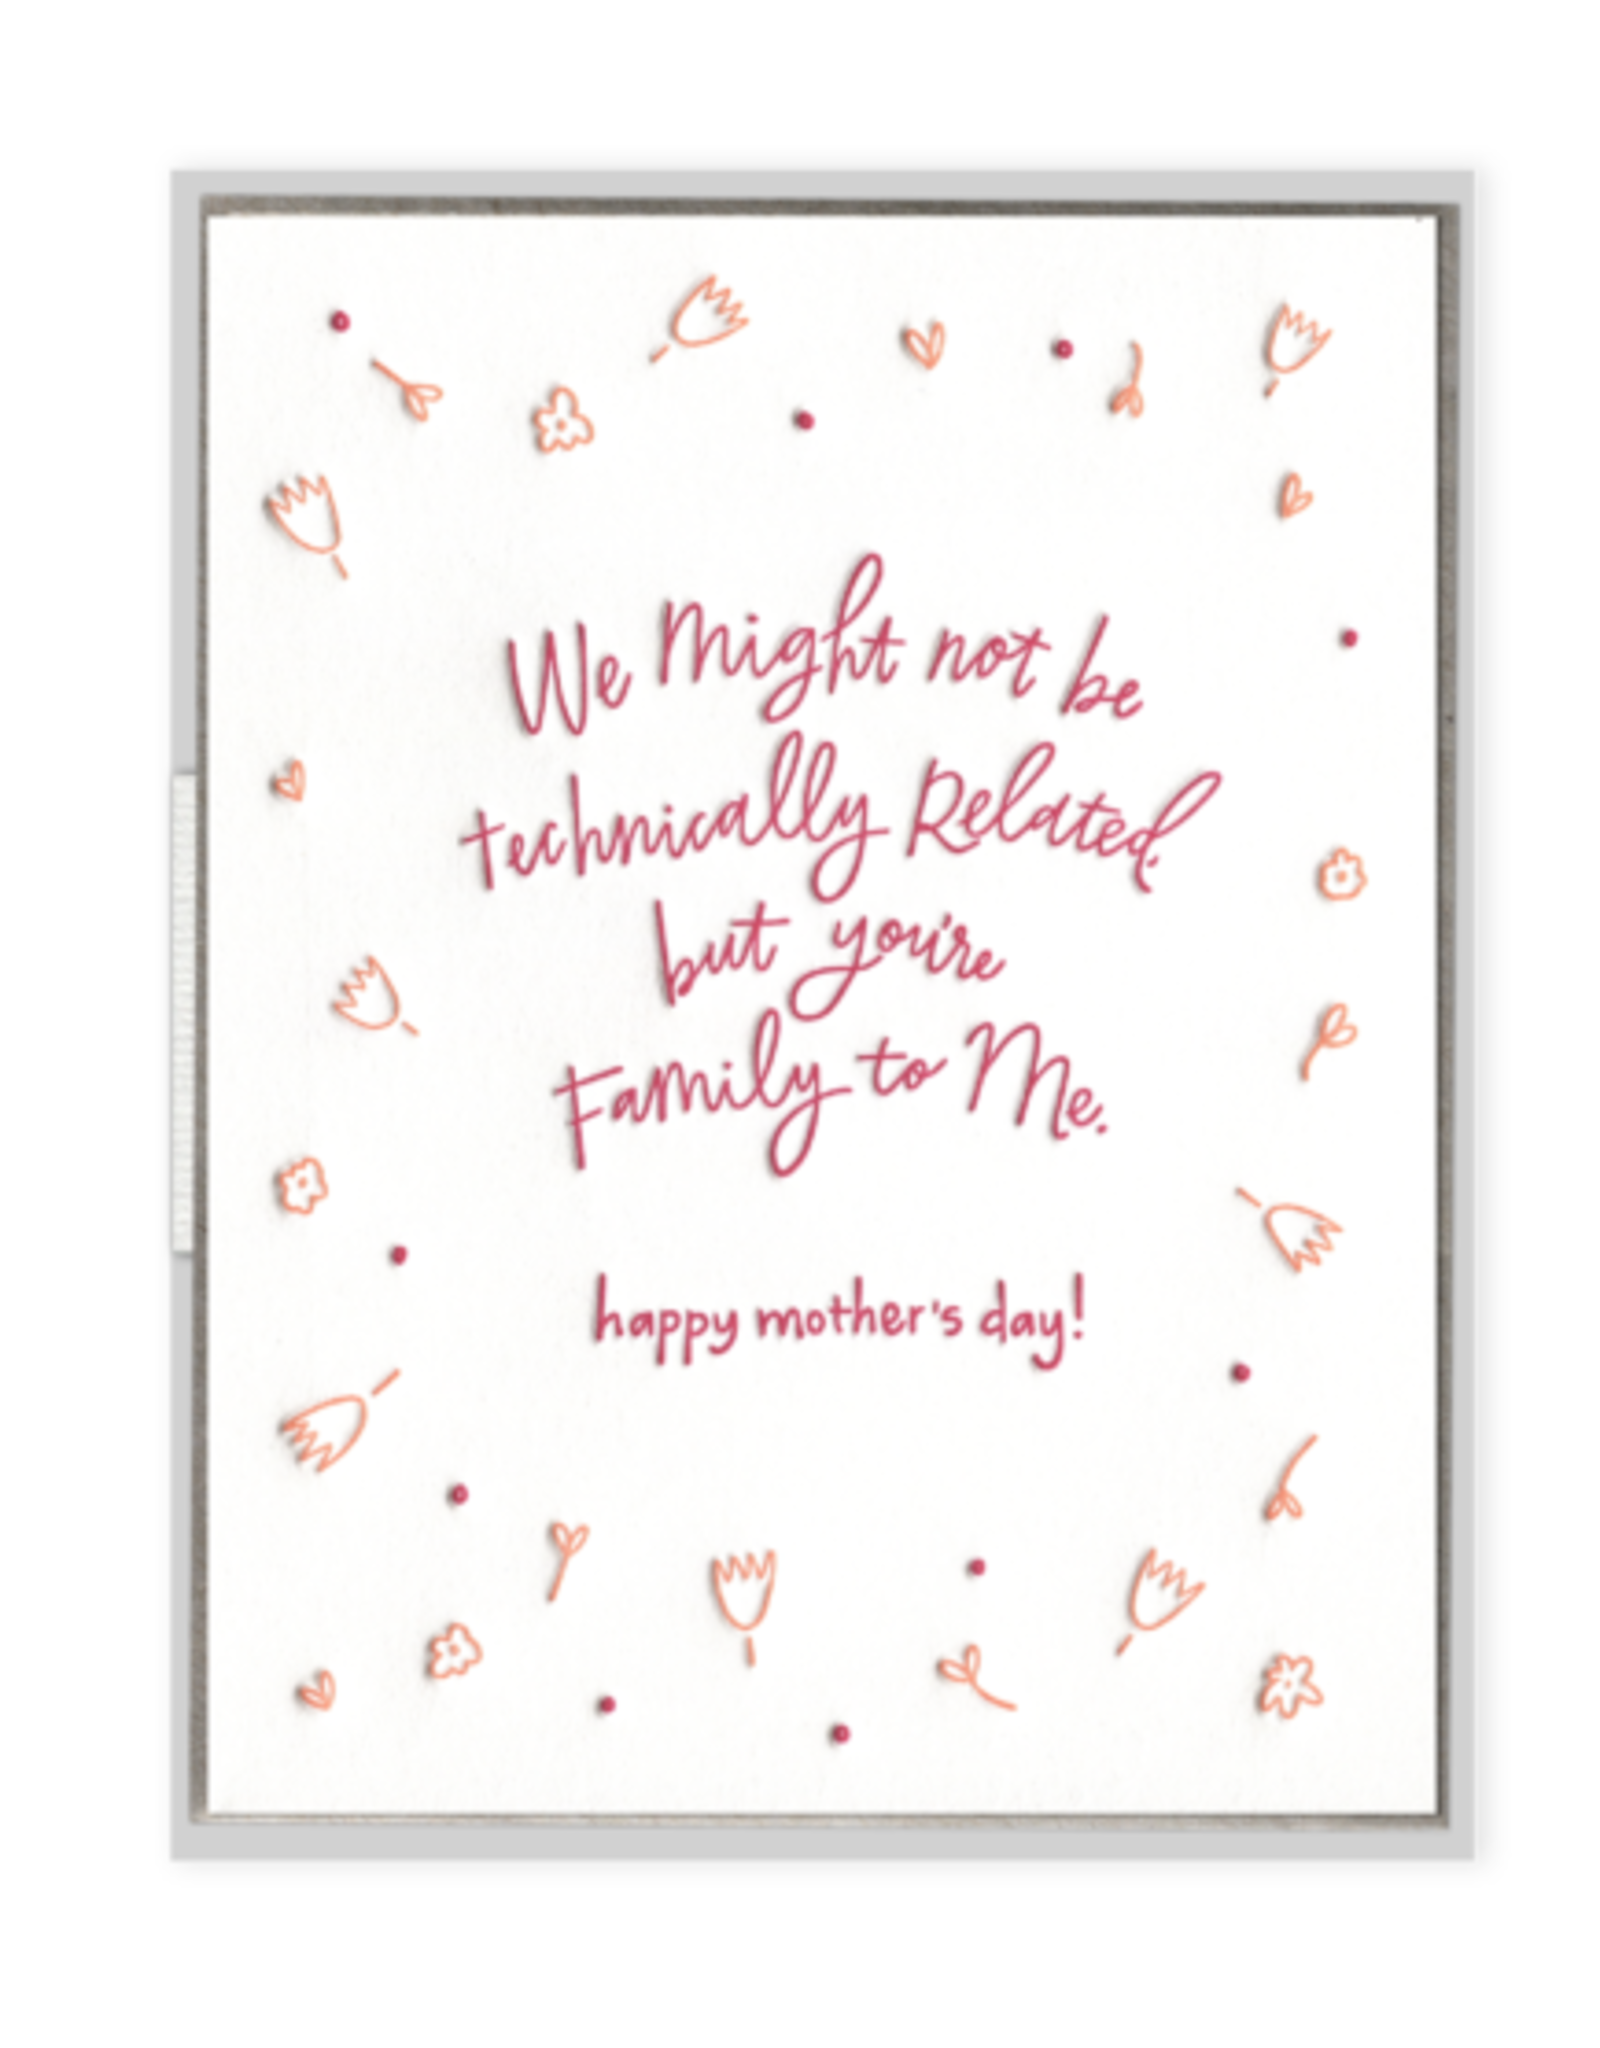 Family to Me Mother's Day Card